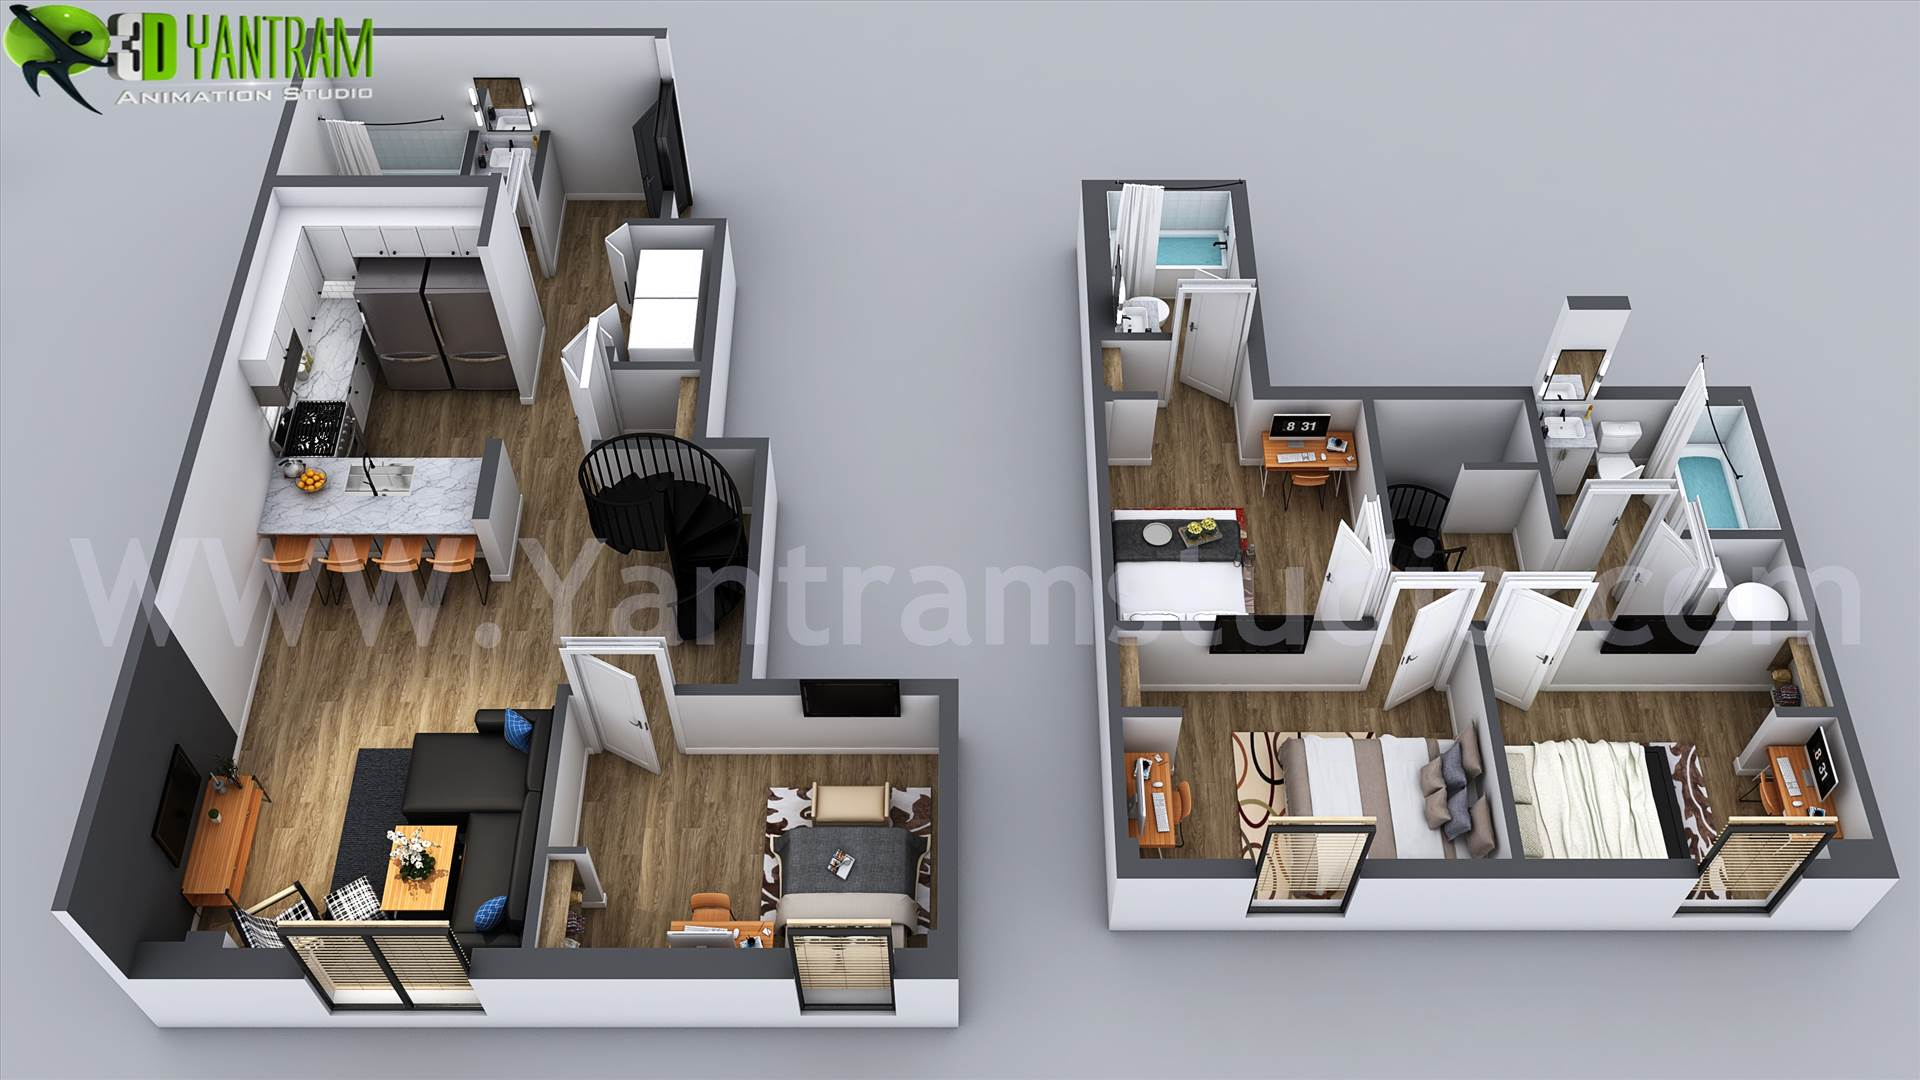 3D Home Floor Plan Designs By Yantram floor plan designer - Washington, USA Floor plans are usually drawn to show exact property area and room types. some are come along with appliances and furniture for the better idea about placement and space utilization.